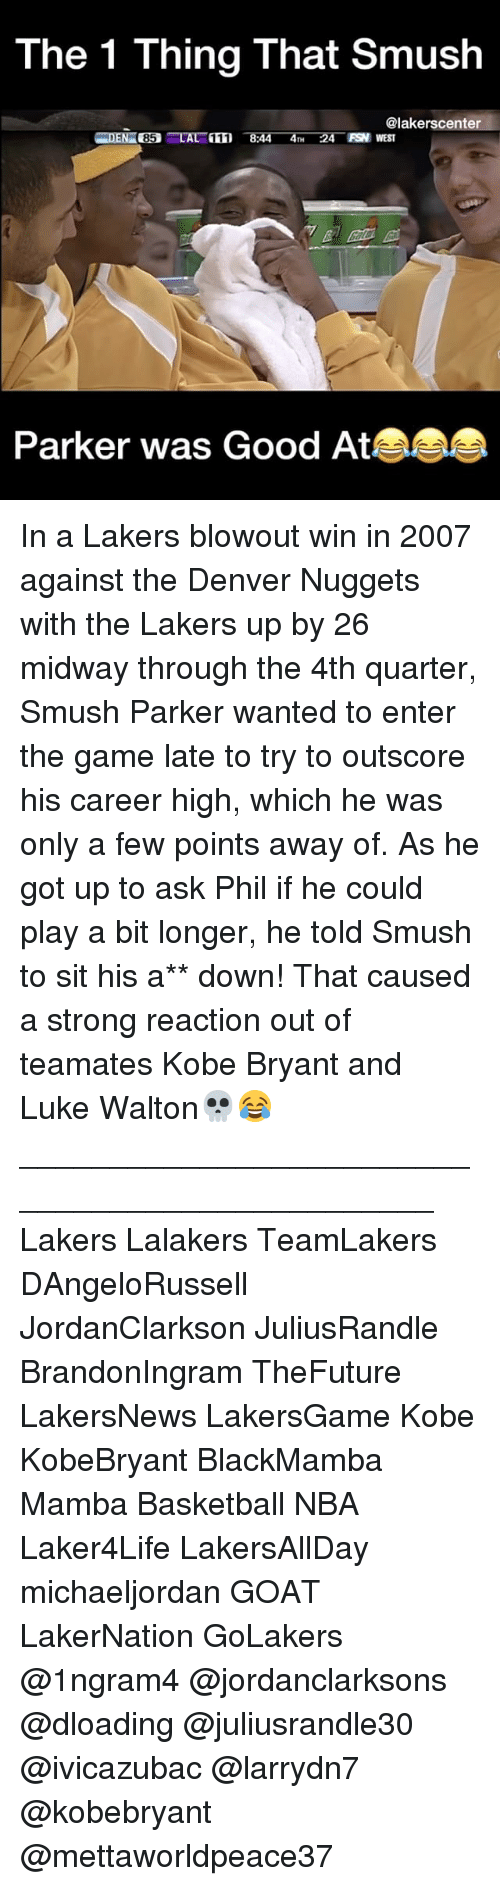 Smushed: The 1 Thing That Smush  @lakerscenter  FSN WEST  85 LA  Parker was Good At In a Lakers blowout win in 2007 against the Denver Nuggets with the Lakers up by 26 midway through the 4th quarter, Smush Parker wanted to enter the game late to try to outscore his career high, which he was only a few points away of. As he got up to ask Phil if he could play a bit longer, he told Smush to sit his a** down! That caused a strong reaction out of teamates Kobe Bryant and Luke Walton💀😂 ________________________________________________ Lakers Lalakers TeamLakers DAngeloRussell JordanClarkson JuliusRandle BrandonIngram TheFuture LakersNews LakersGame Kobe KobeBryant BlackMamba Mamba Basketball NBA Laker4Life LakersAllDay michaeljordan GOAT LakerNation GoLakers @1ngram4 @jordanclarksons @dloading @juliusrandle30 @ivicazubac @larrydn7 @kobebryant @mettaworldpeace37